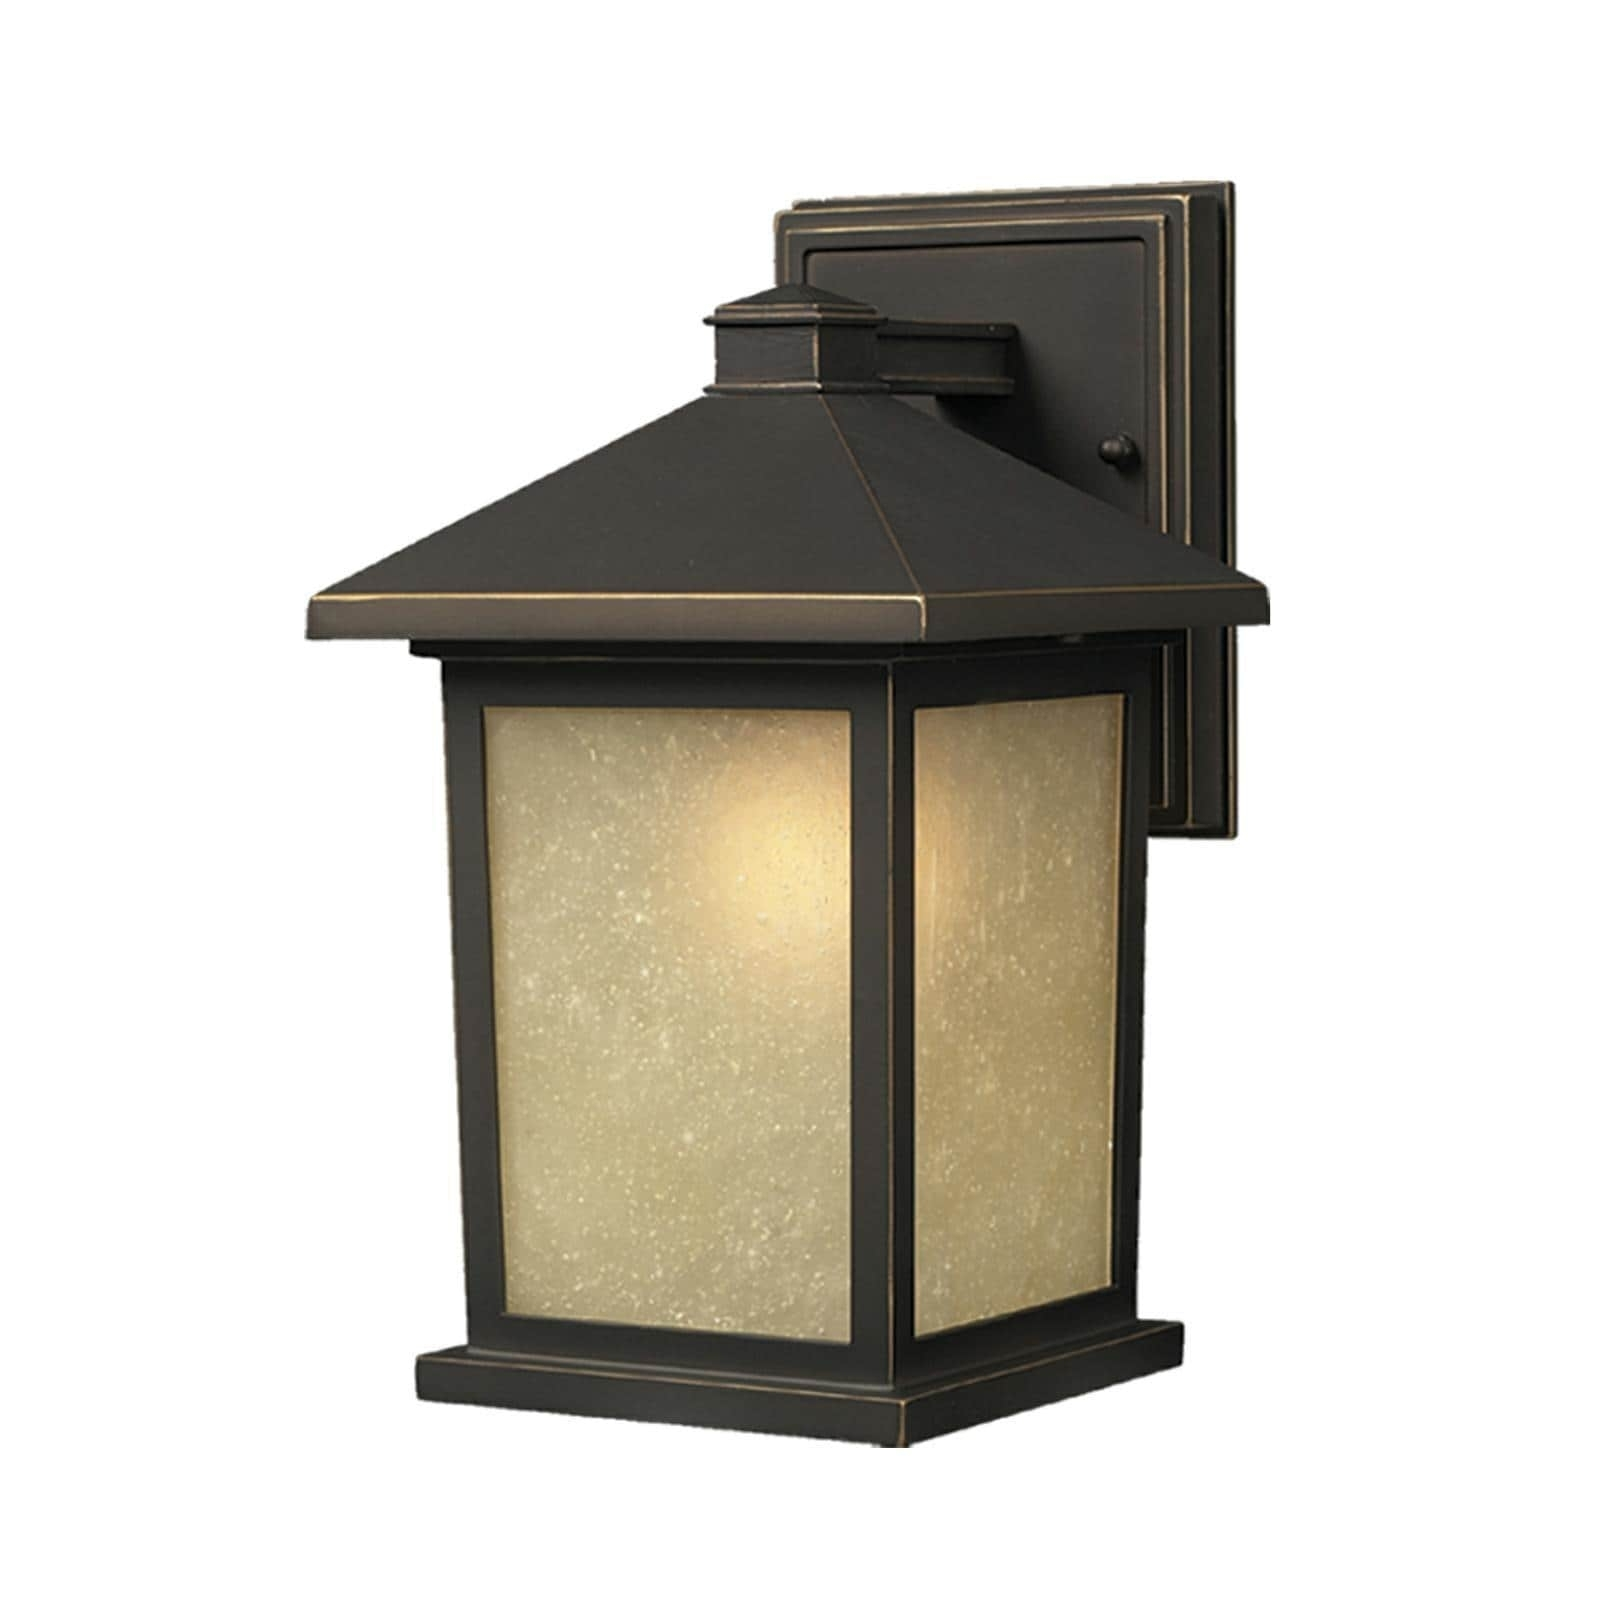 Holbrook 1 Light Oil Rubbed Bronze Outdoor Wall Light – Free With Regard To Oil Rubbed Bronze Outdoor Wall Lights (#7 of 15)